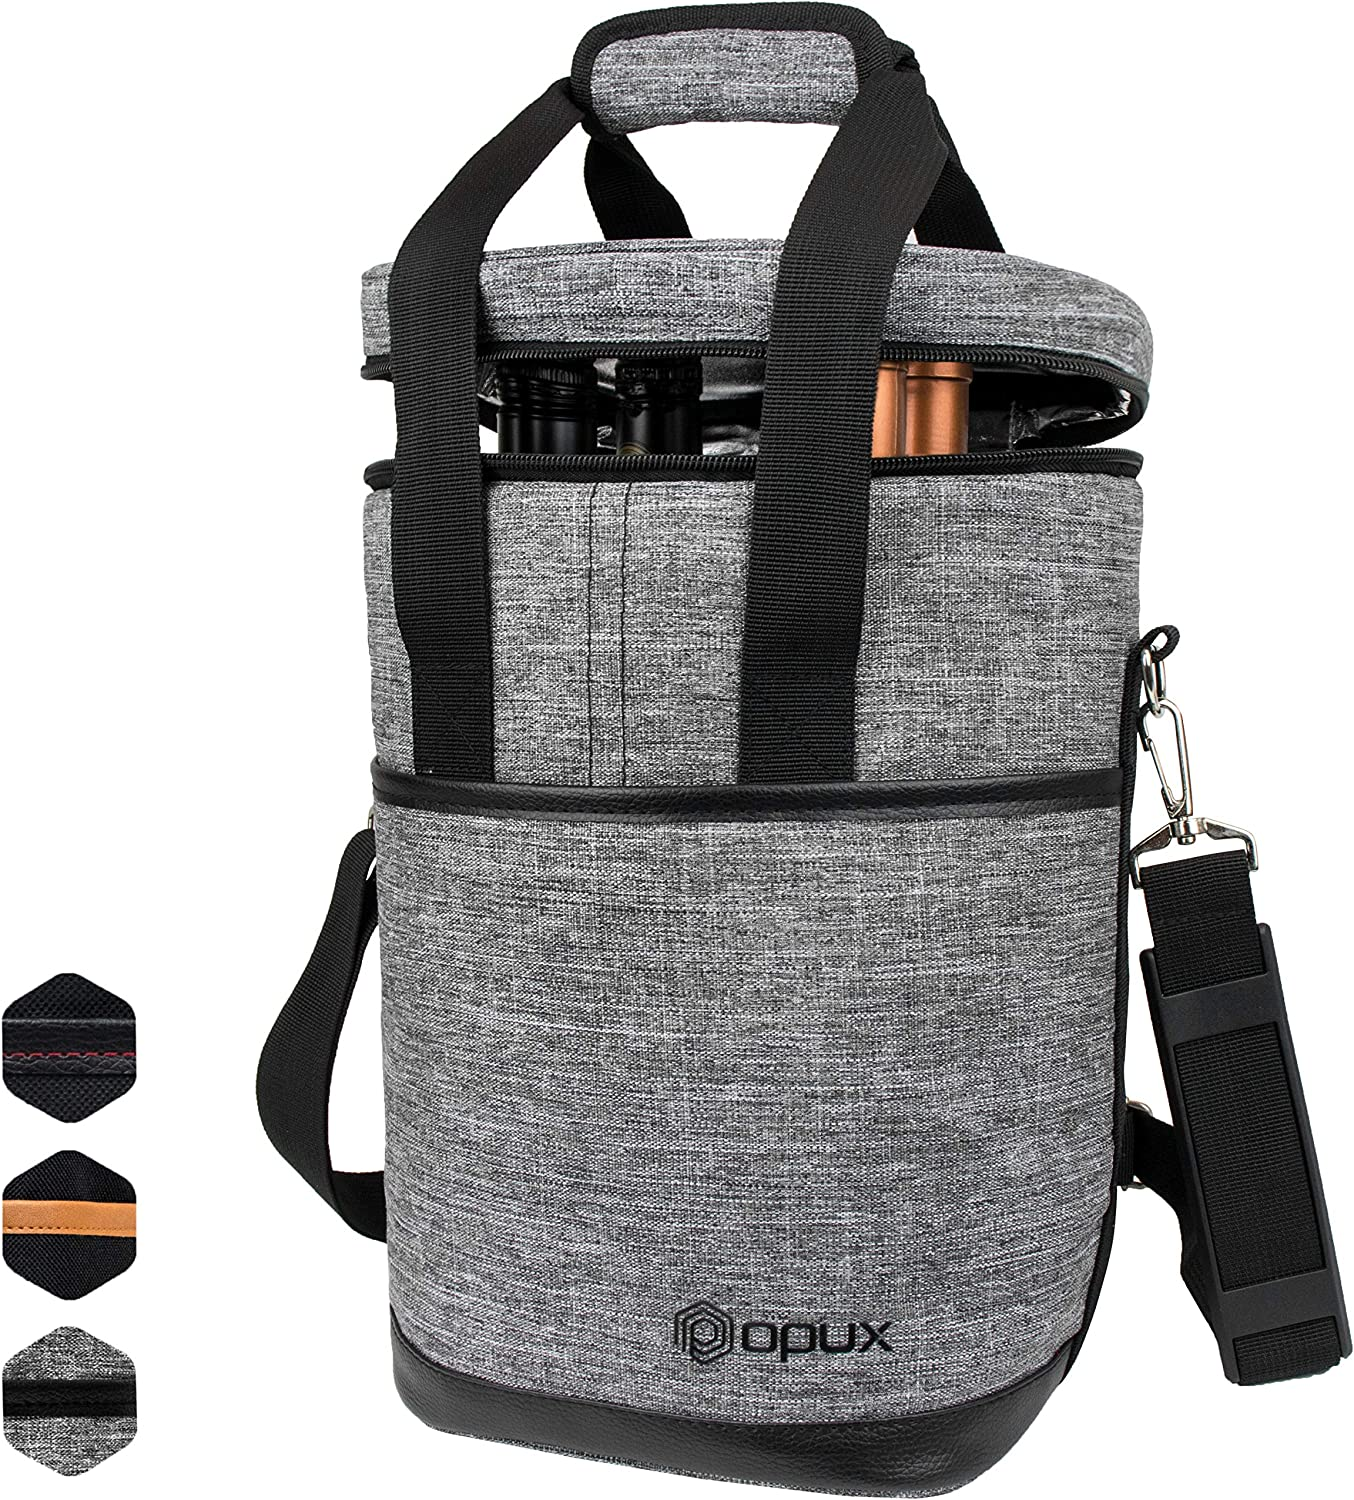 OPUX 4 Bottle Wine Cooler Bag | Wine Bottle Carrier for Travel | Wine Tote with Adjustable Shoulder Strap and Padded Protection (Heather Gray)